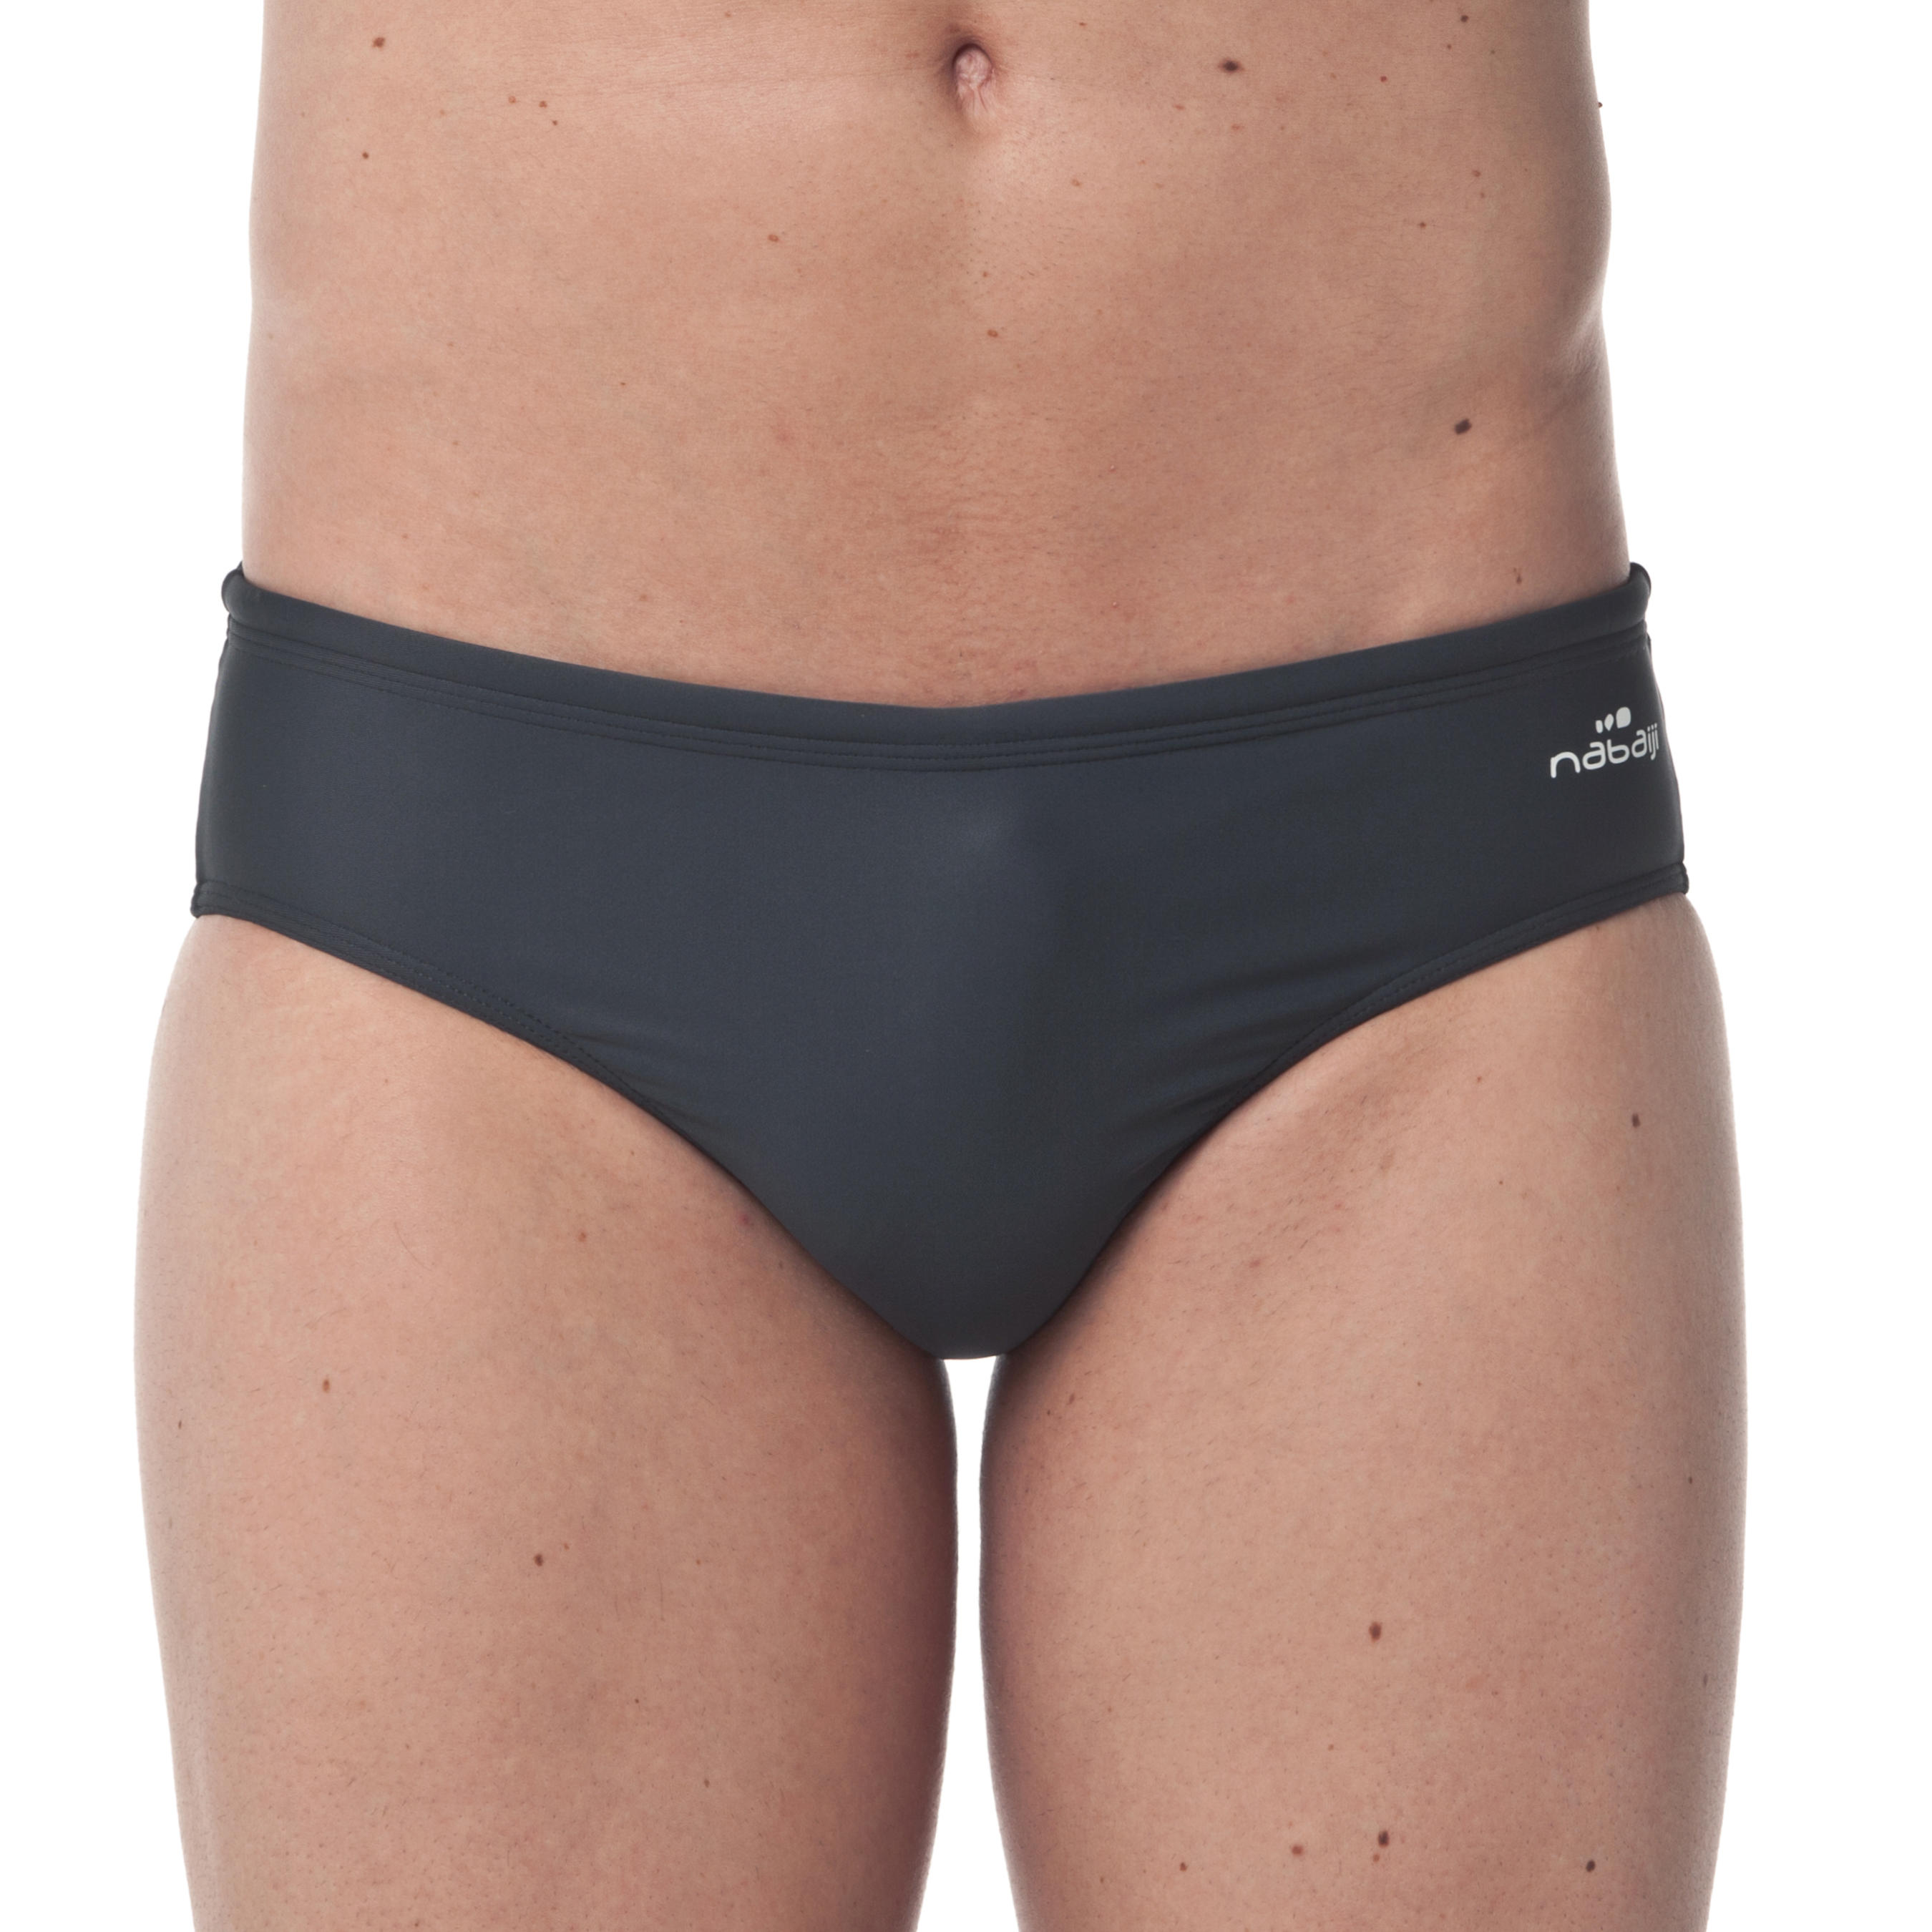 100 MEN'S SWIMMING BRIEFS - BASIC GREY